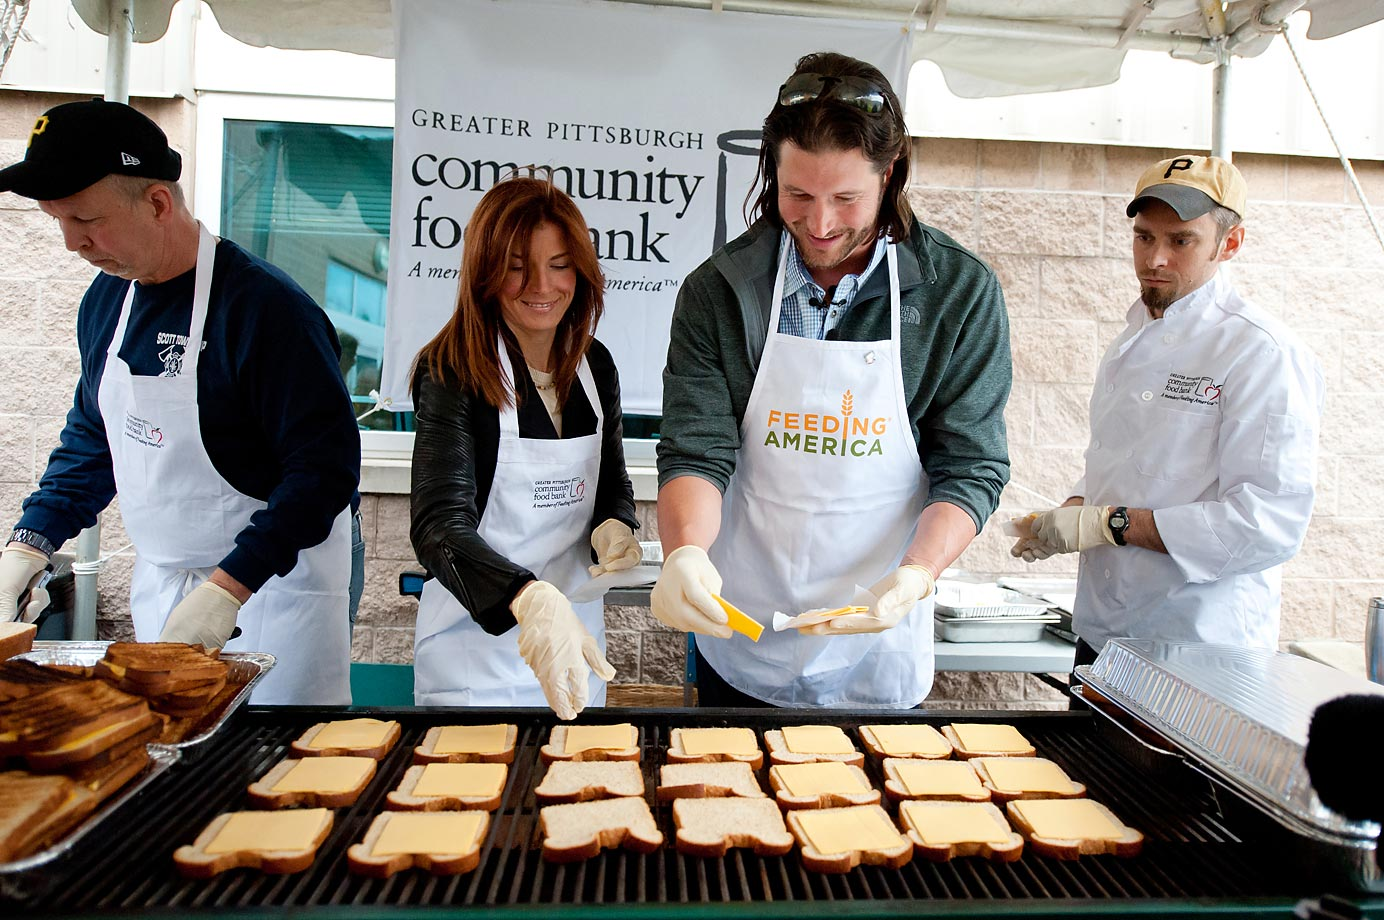 Pittsburgh Pirates pitcher Jason Grilli and his wife volunteer at the Greater Pittsburgh Community Food Bank by serving grilled cheese sandwiches to Pittsburgh area food bank clients.